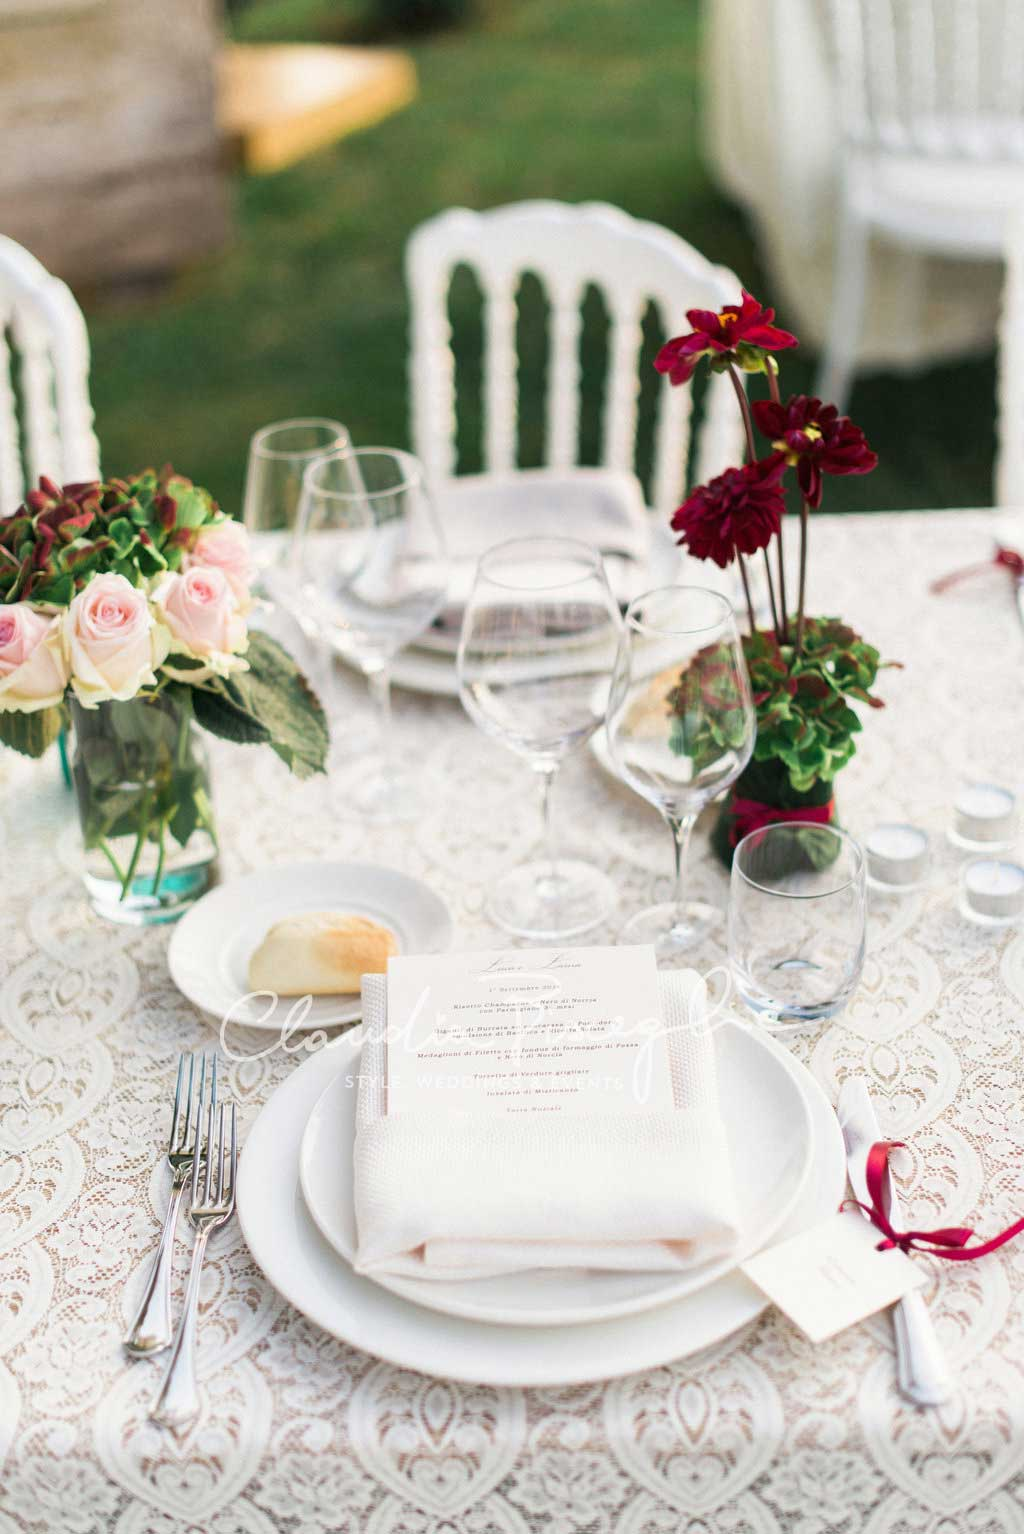 -Napkin-Menu-Table-setting-details-flowers